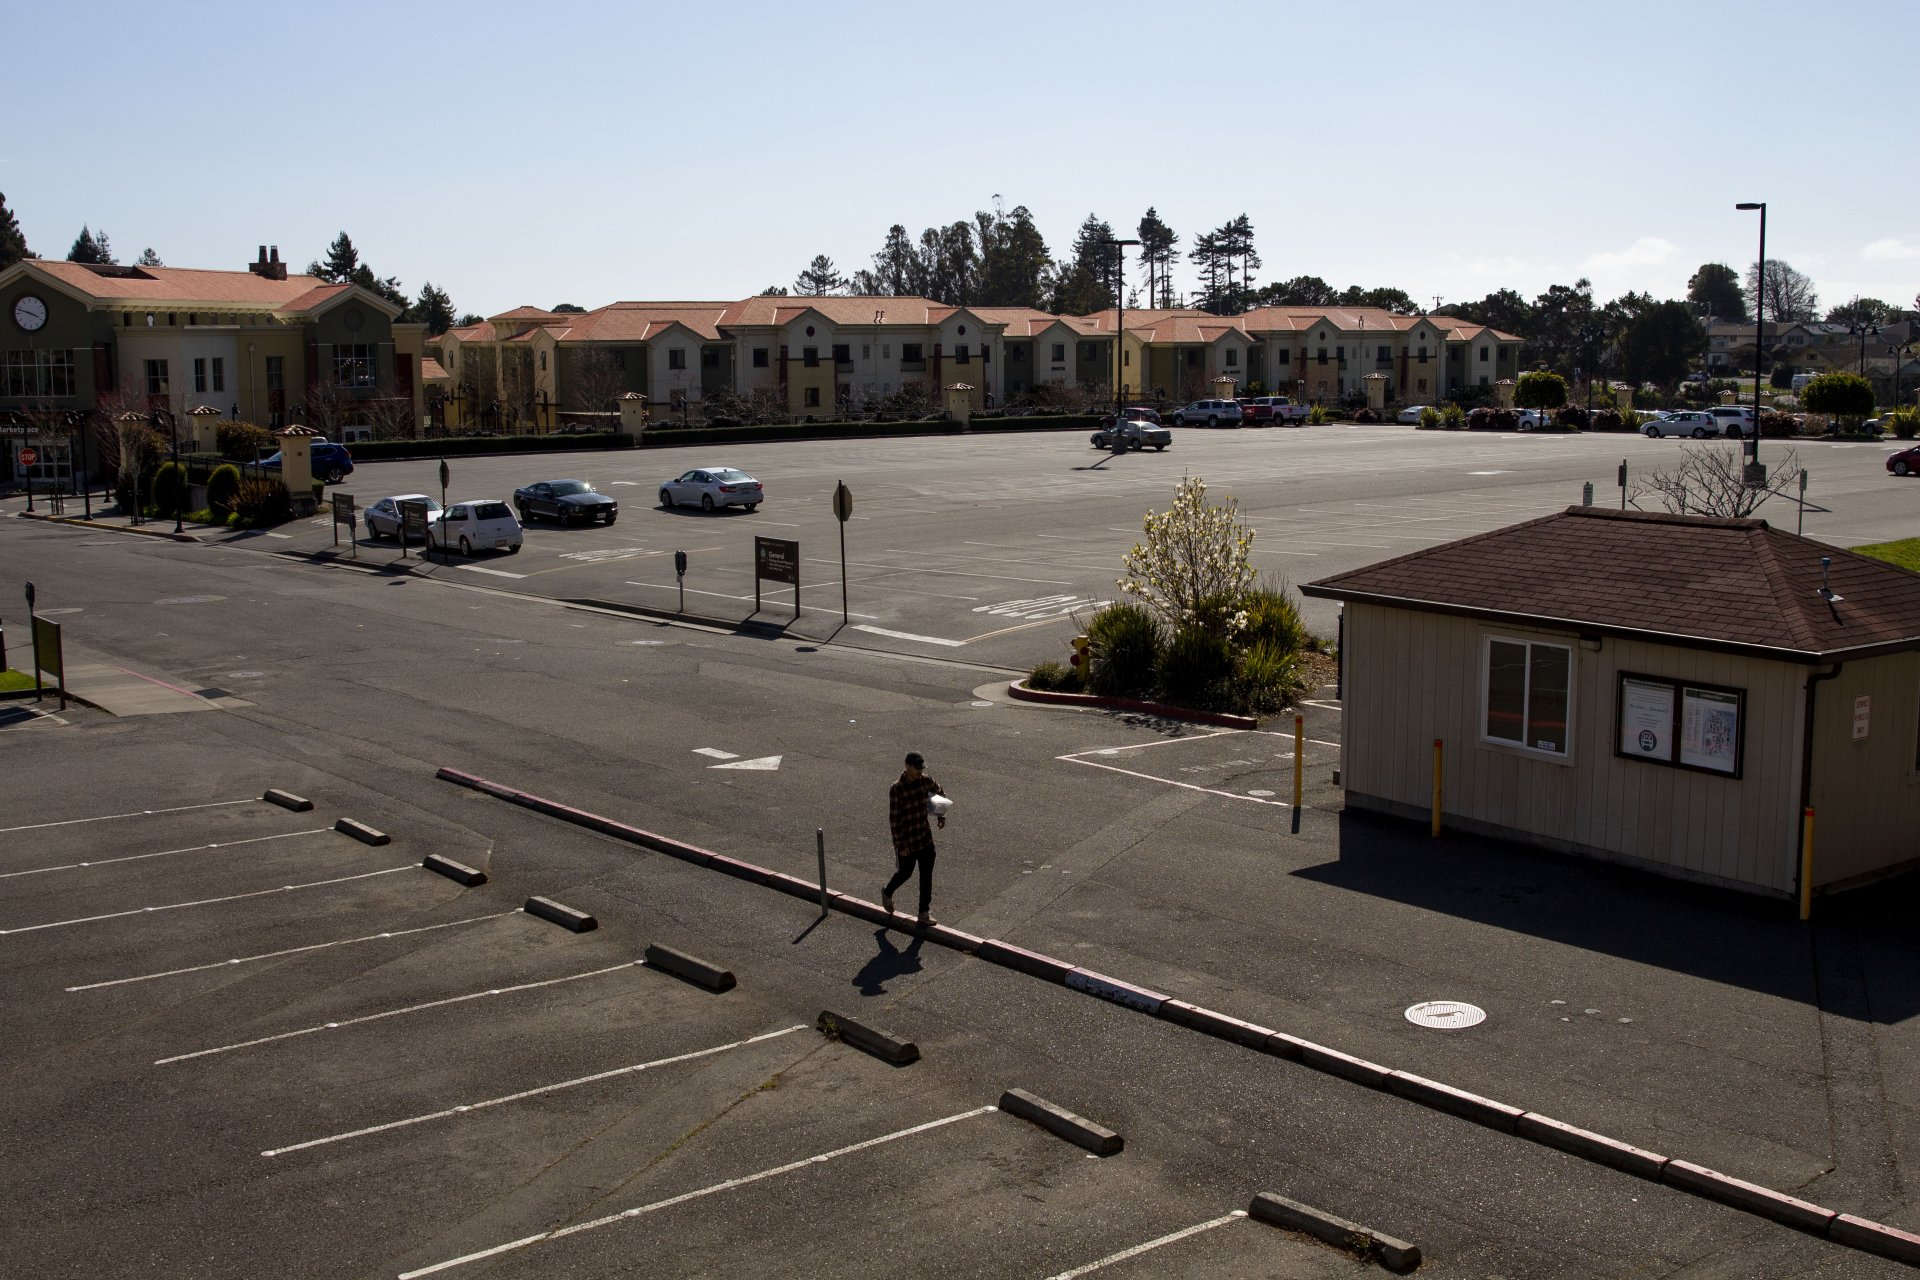 A lone person walks through the mostly empty parking lots at Humboldt State University on the first weekend of the Humboldt County shelter in place order due to COVID-19 on March 21. | Photo by Thomas Lal